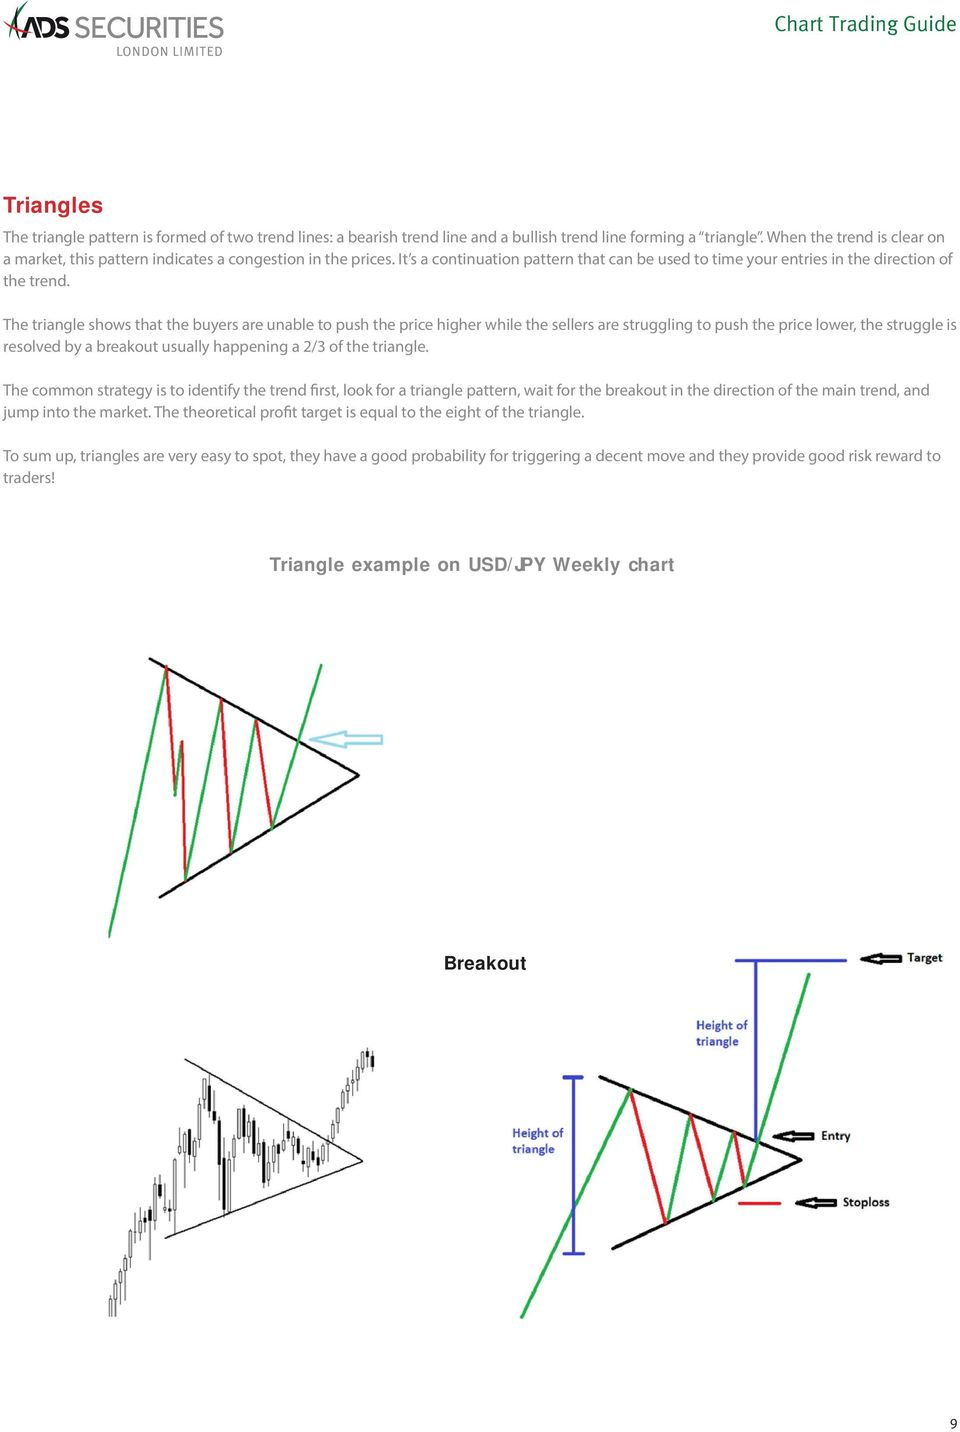 The triangle shows that the buyers are unable to push the price higher while the sellers are struggling to push the price lower, the struggle is resolved by a breakout usually happening a 2/3 of the